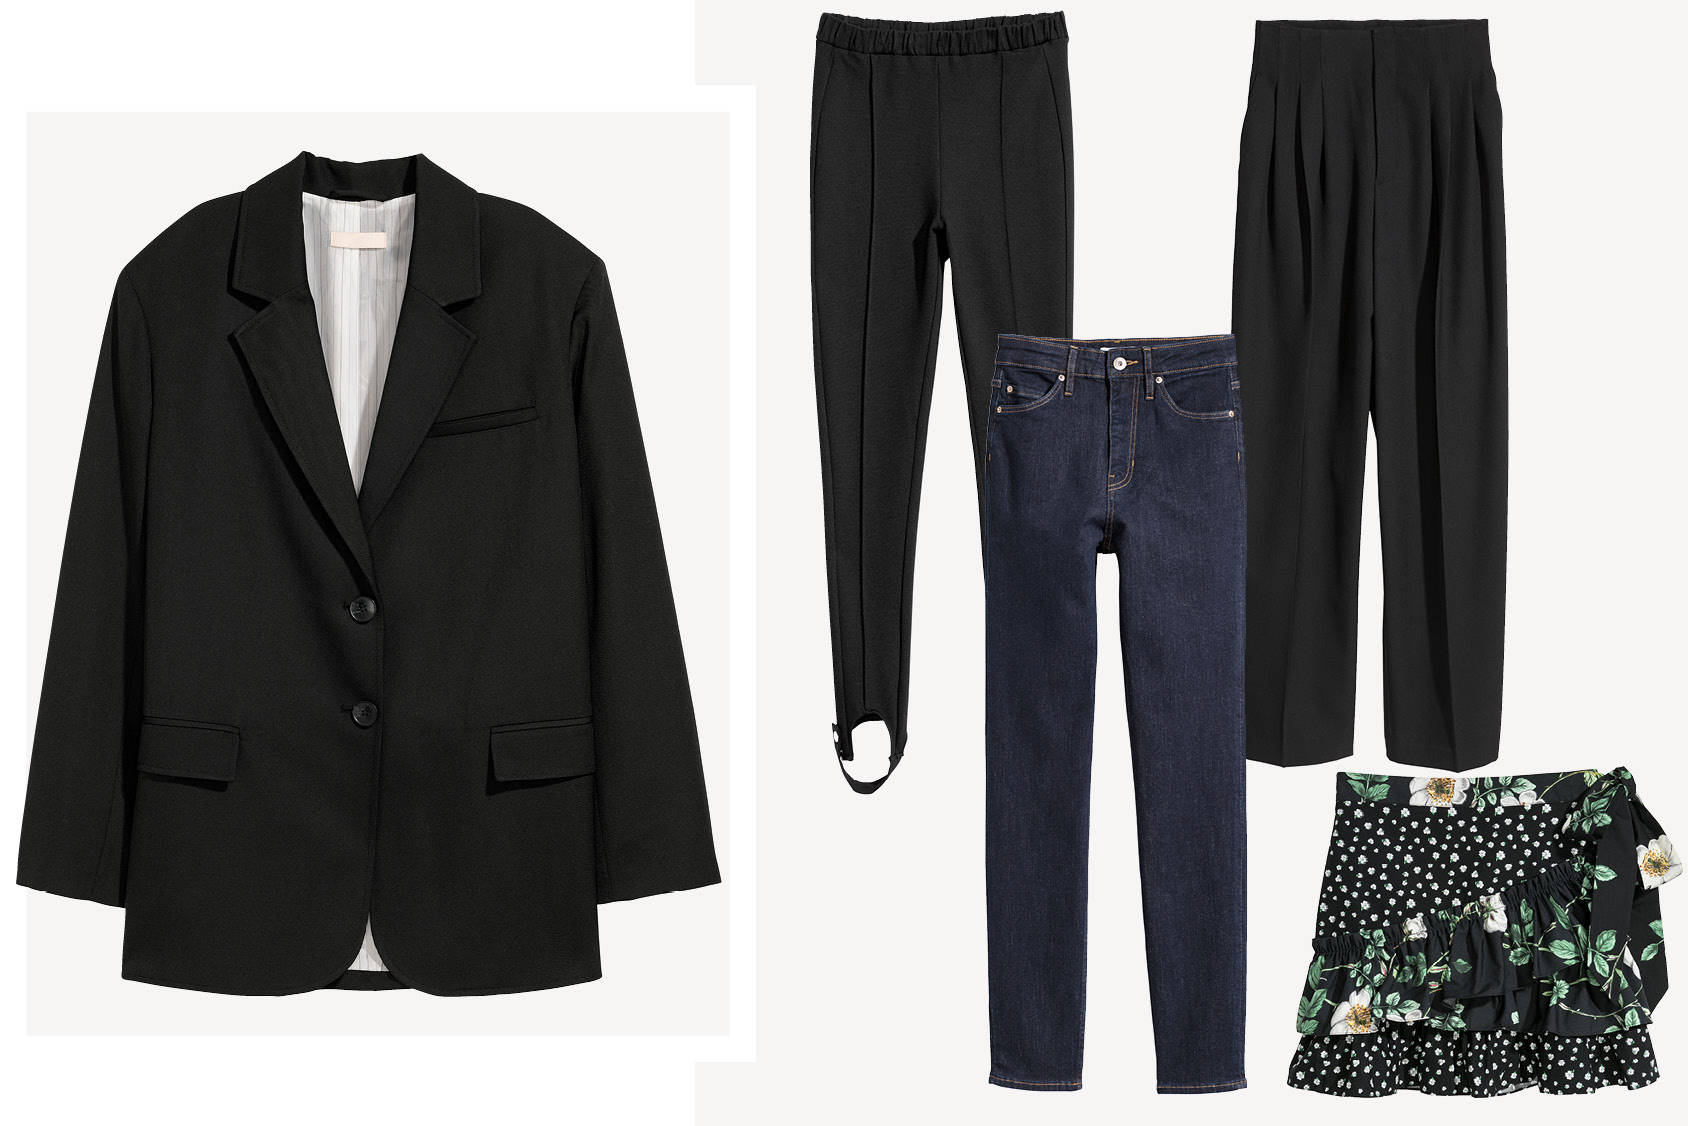 What to wear with: the oversized blazer